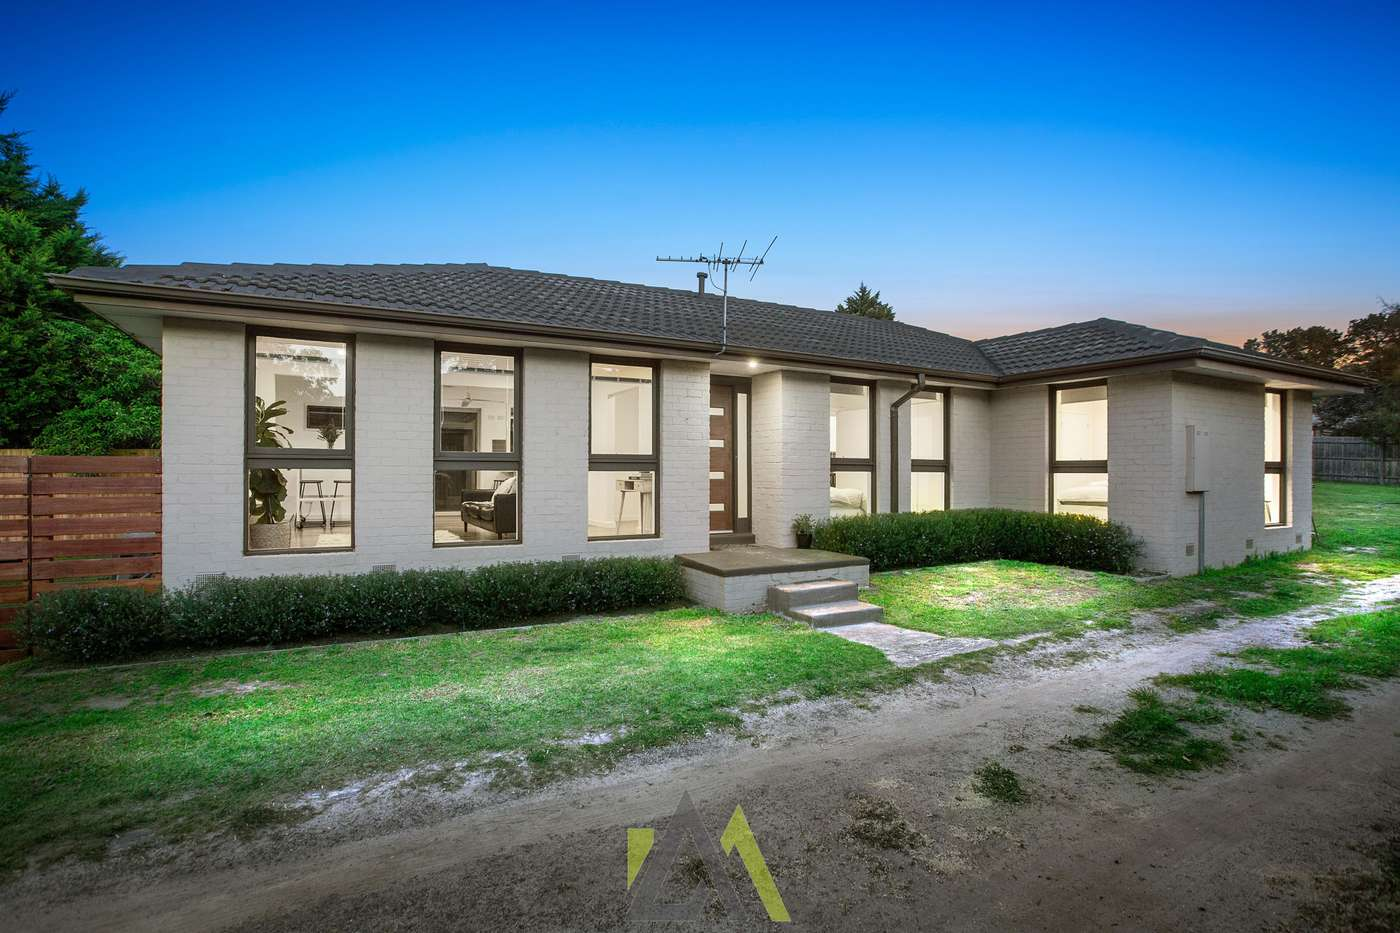 Main view of Homely house listing, 2/72 Beech Street, Langwarrin, VIC 3910